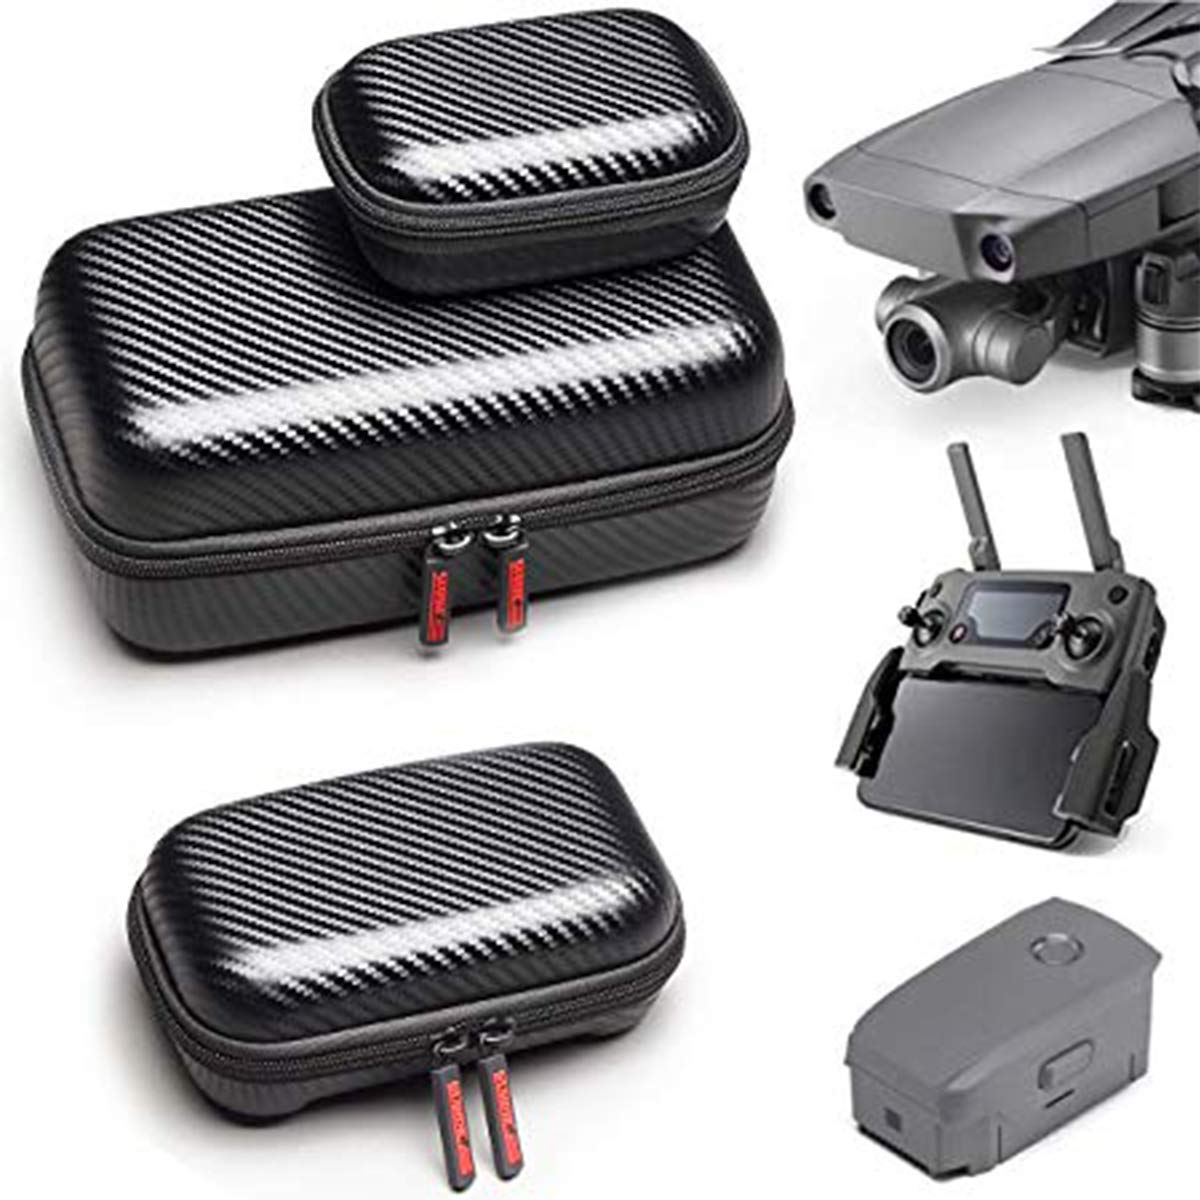 Carring Case for Mavic 2 Pro Zoom STARTRC Waterproof Carrying Case Foldable for DJI Mavic 2 Pro Zoom Mavic Pro Platinum Drone Body Remote Controller and Battery Bag Accessories